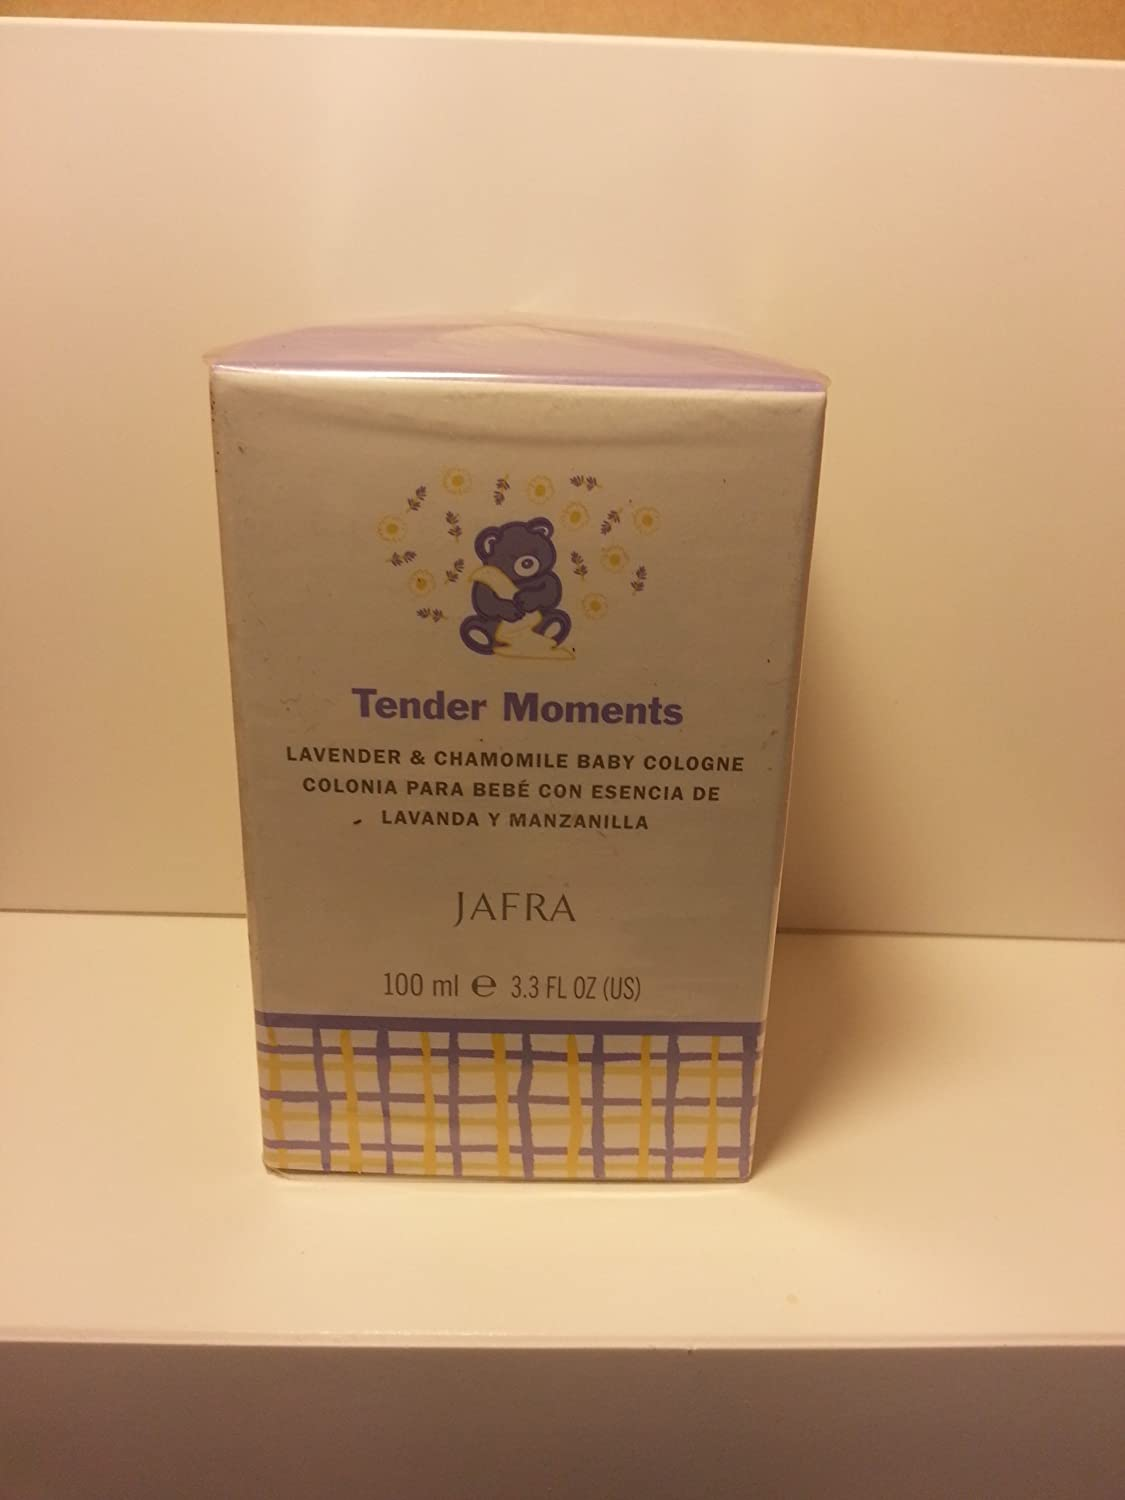 Jafra Tender Moments Lavender & Chamomile Baby Cologne 3.3 fl. oz. by Jafra Jubujub